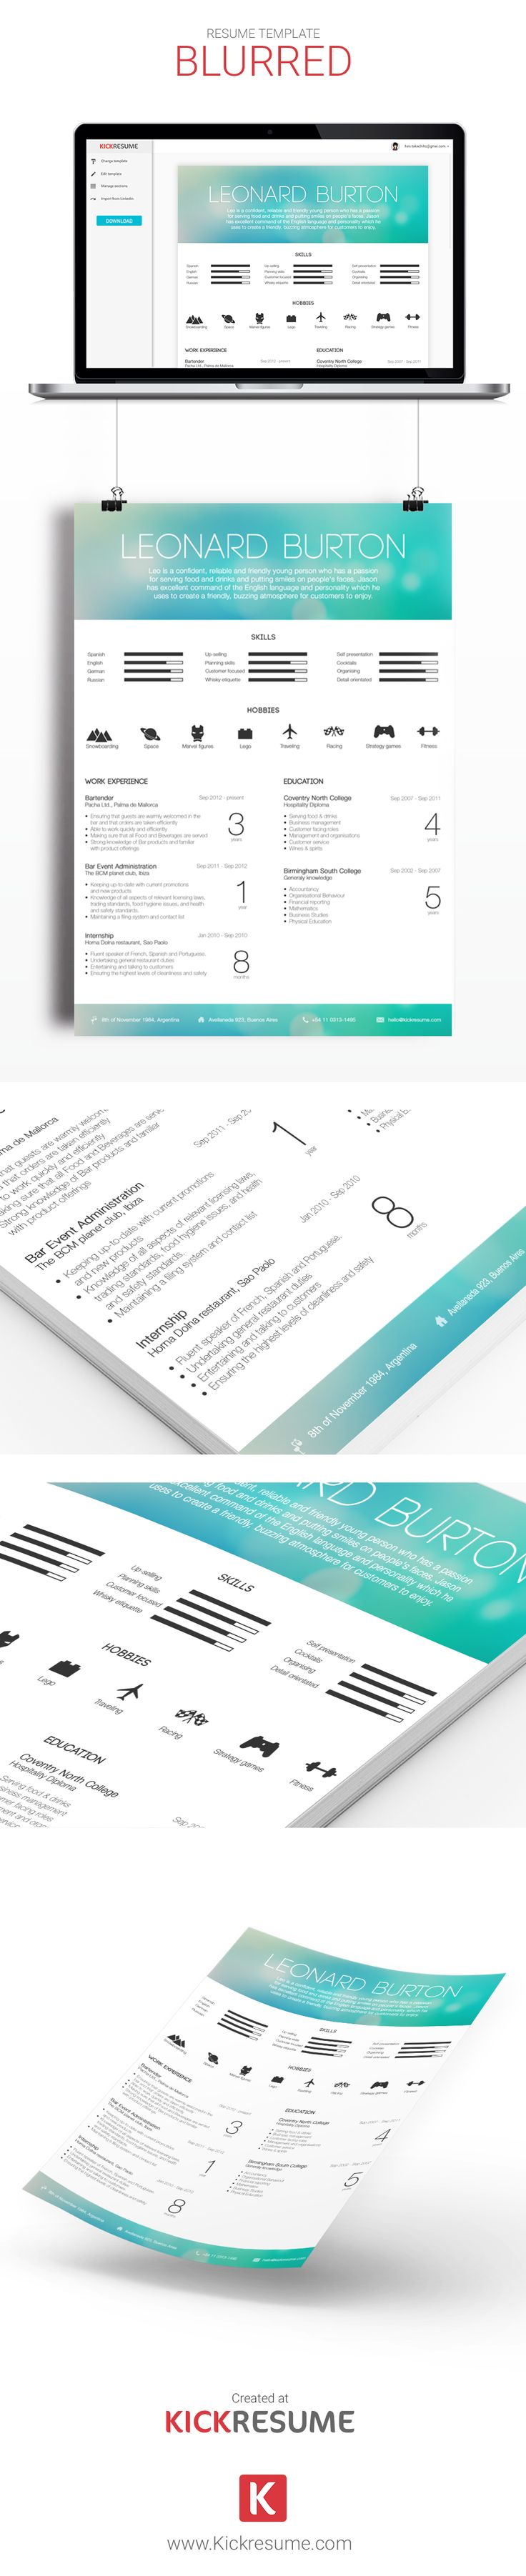 try worlds most advanced resume builder wwwkickresumecom resume sample resume - Perfect Resume Sample